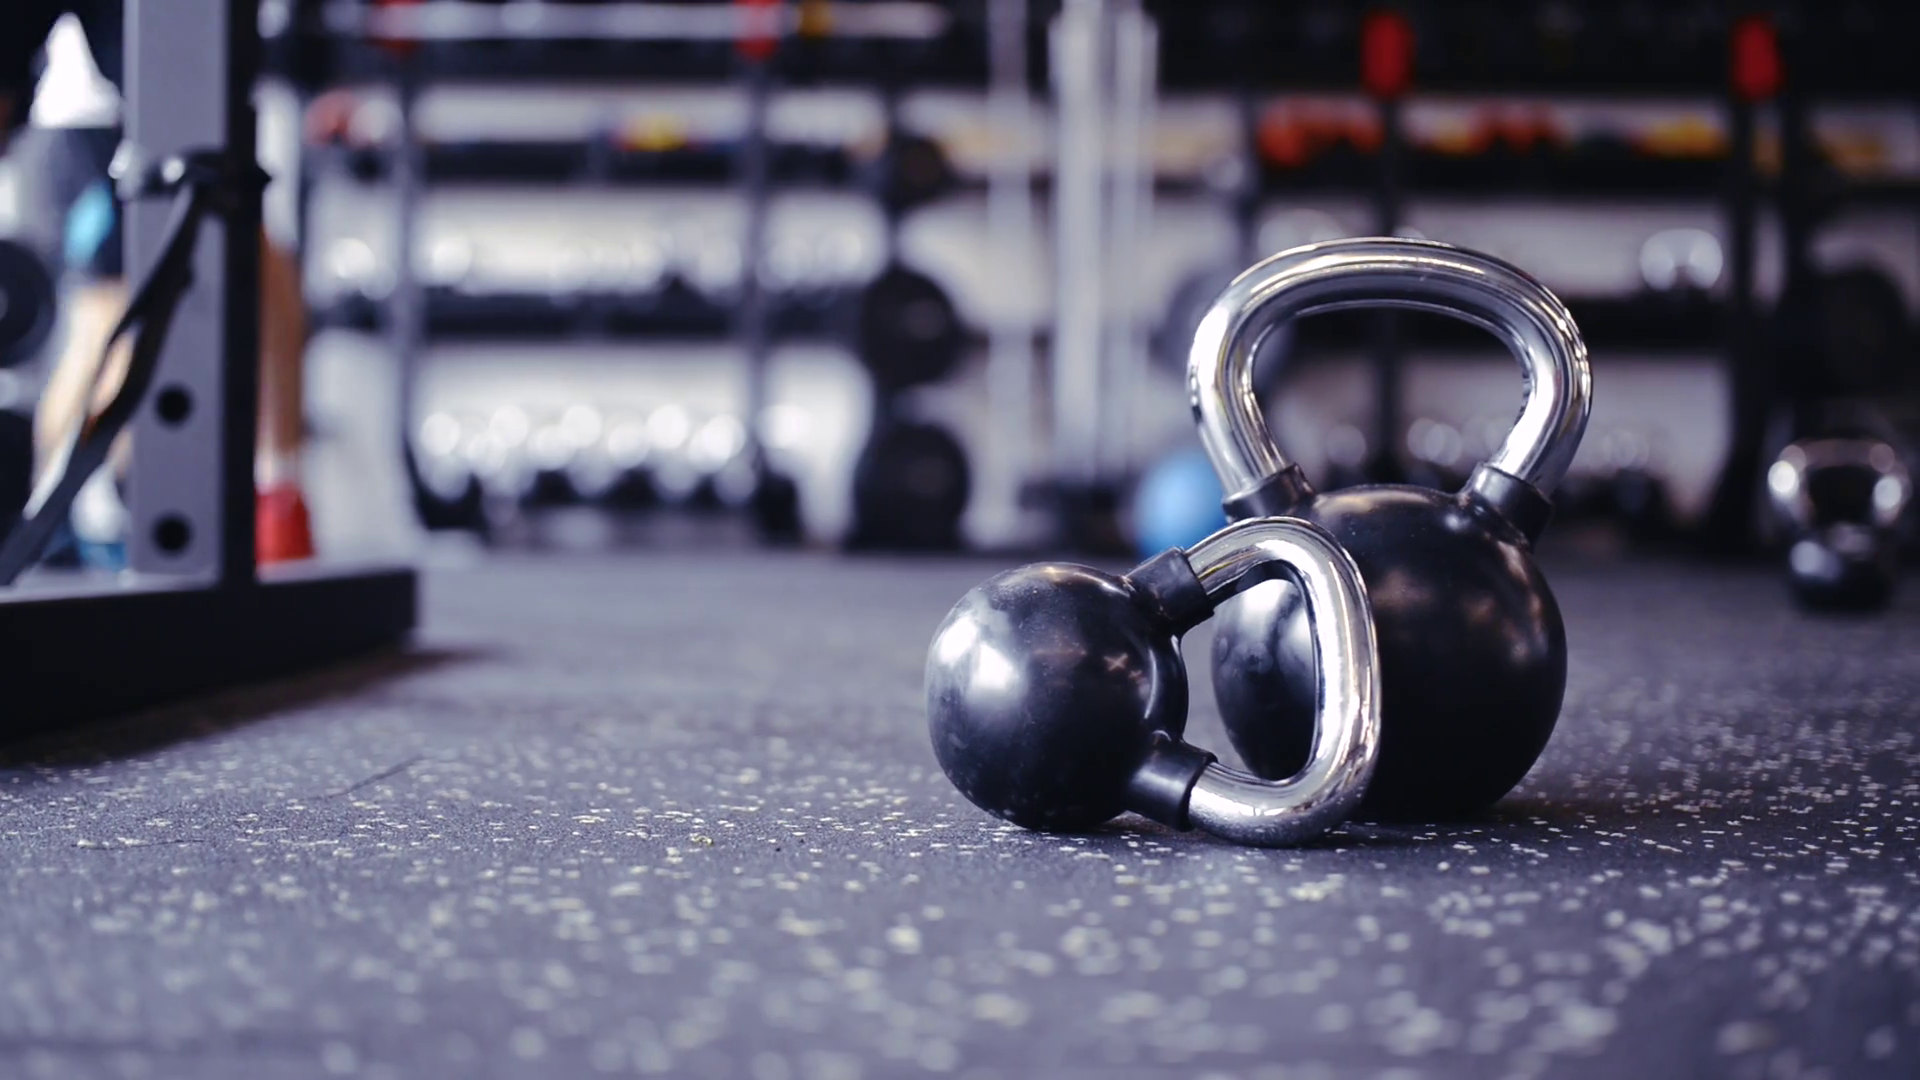 videoblocks-pair-of-kettlebells-laid-on-the-floor-in-gym_ssncefuz_thumbnail-full01